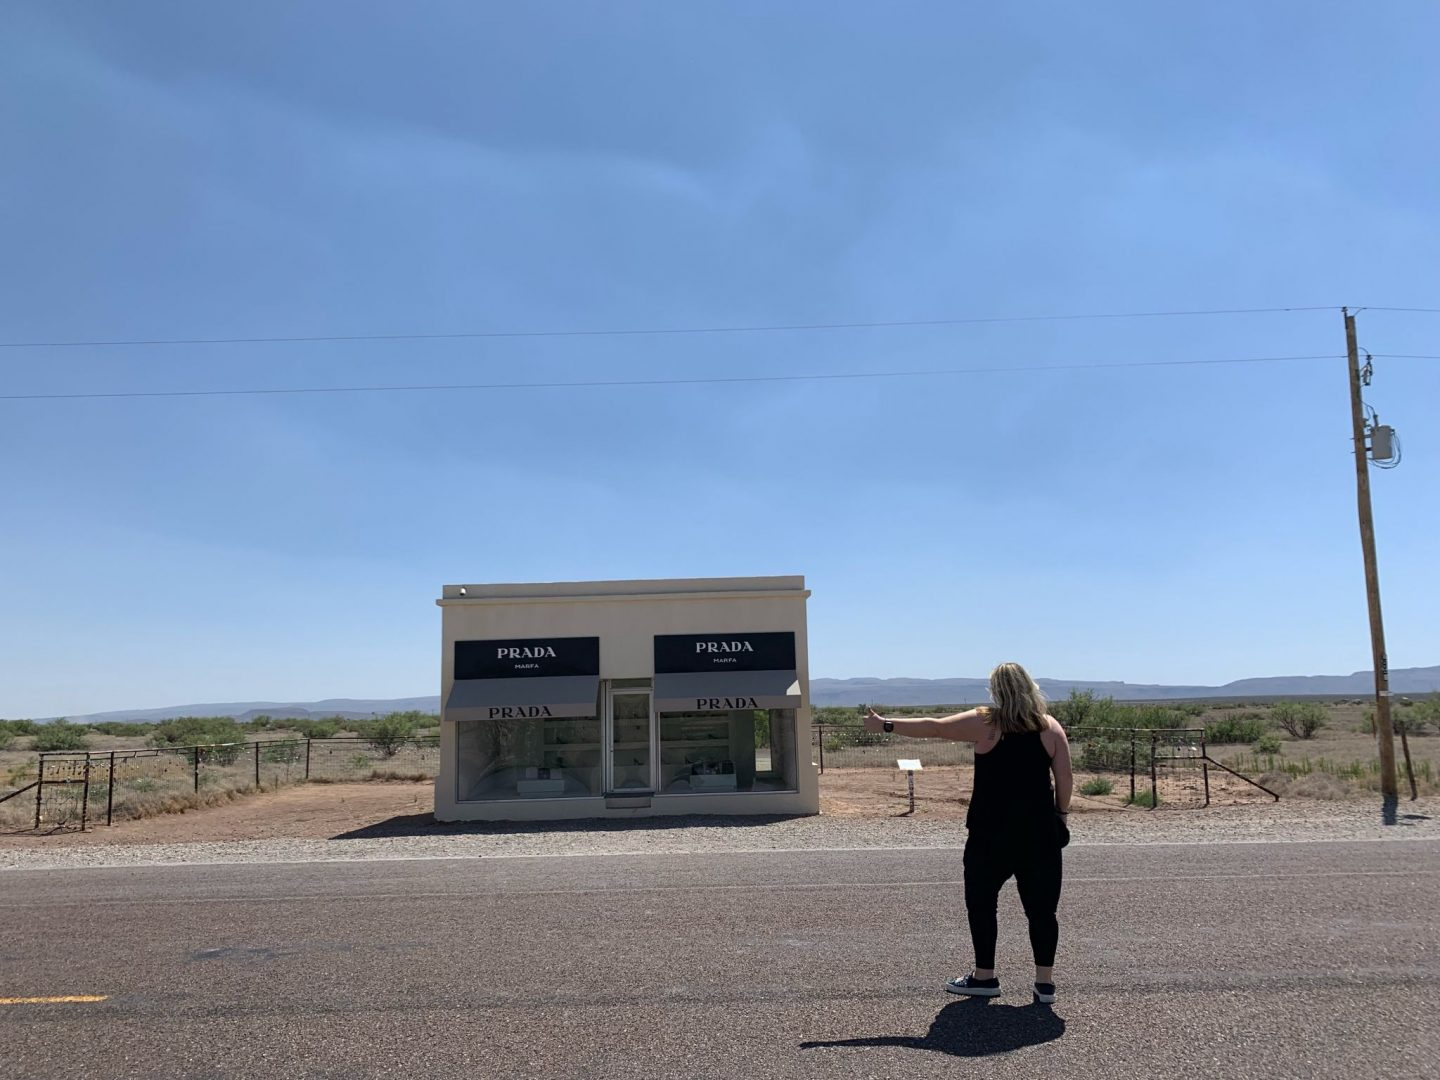 Check out this short Video Trailer on a trip to Marfa Texas